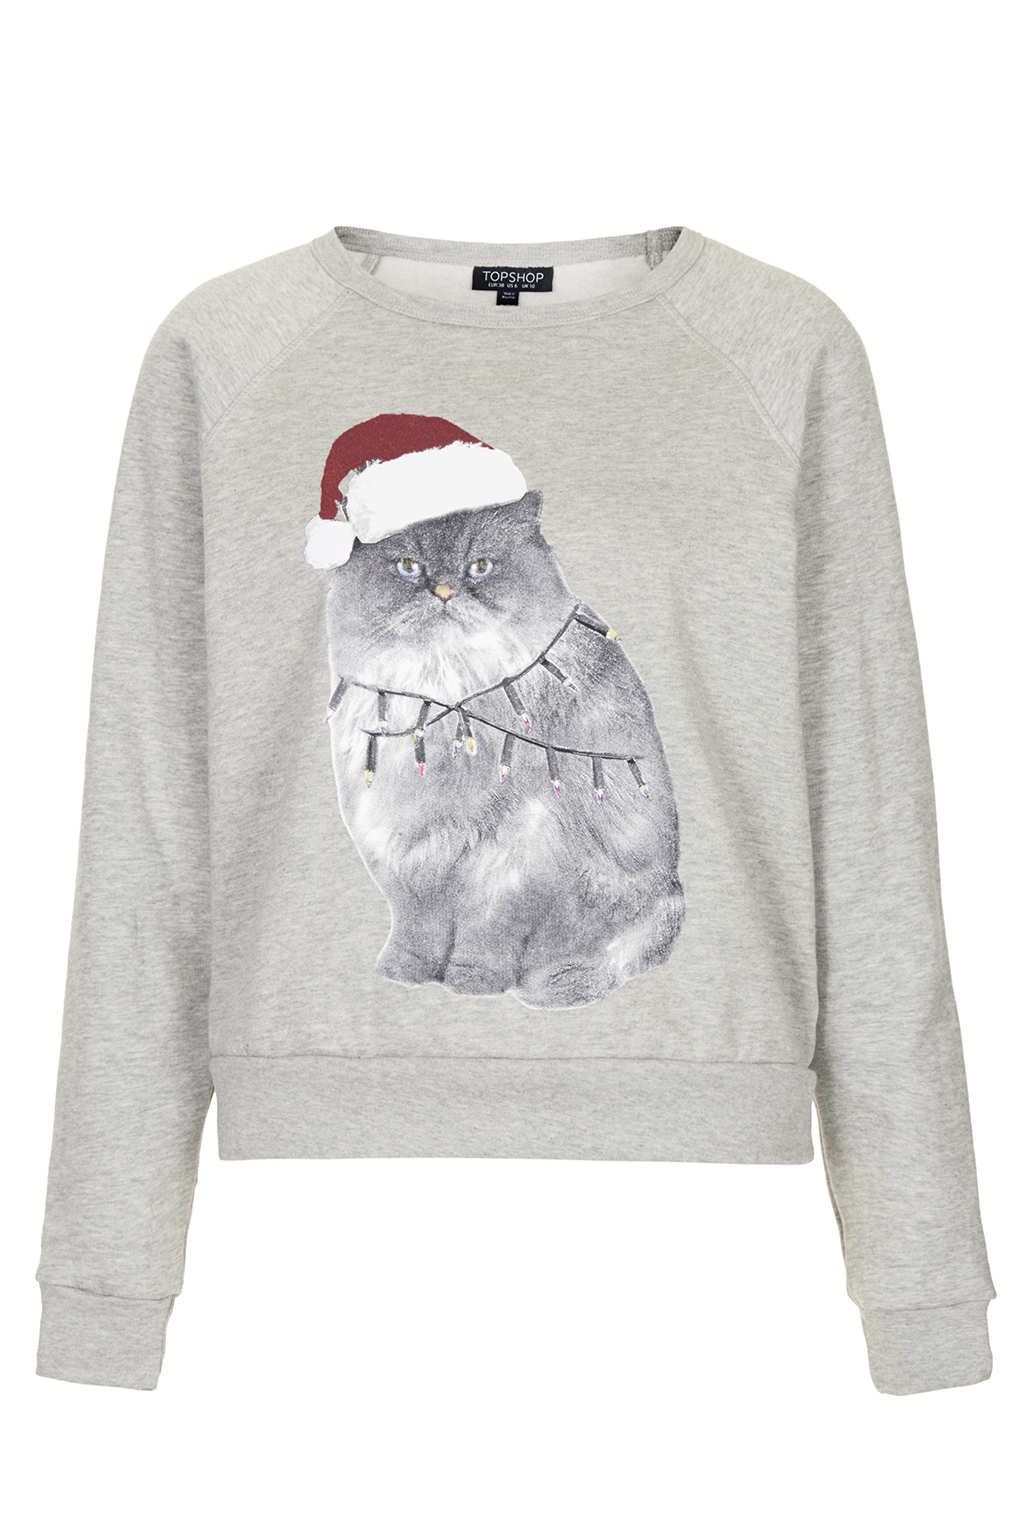 Men's Clothing Hipster Snowman Printed Sweater Mens Girls Christmas Jumper Festive Xmas New Top